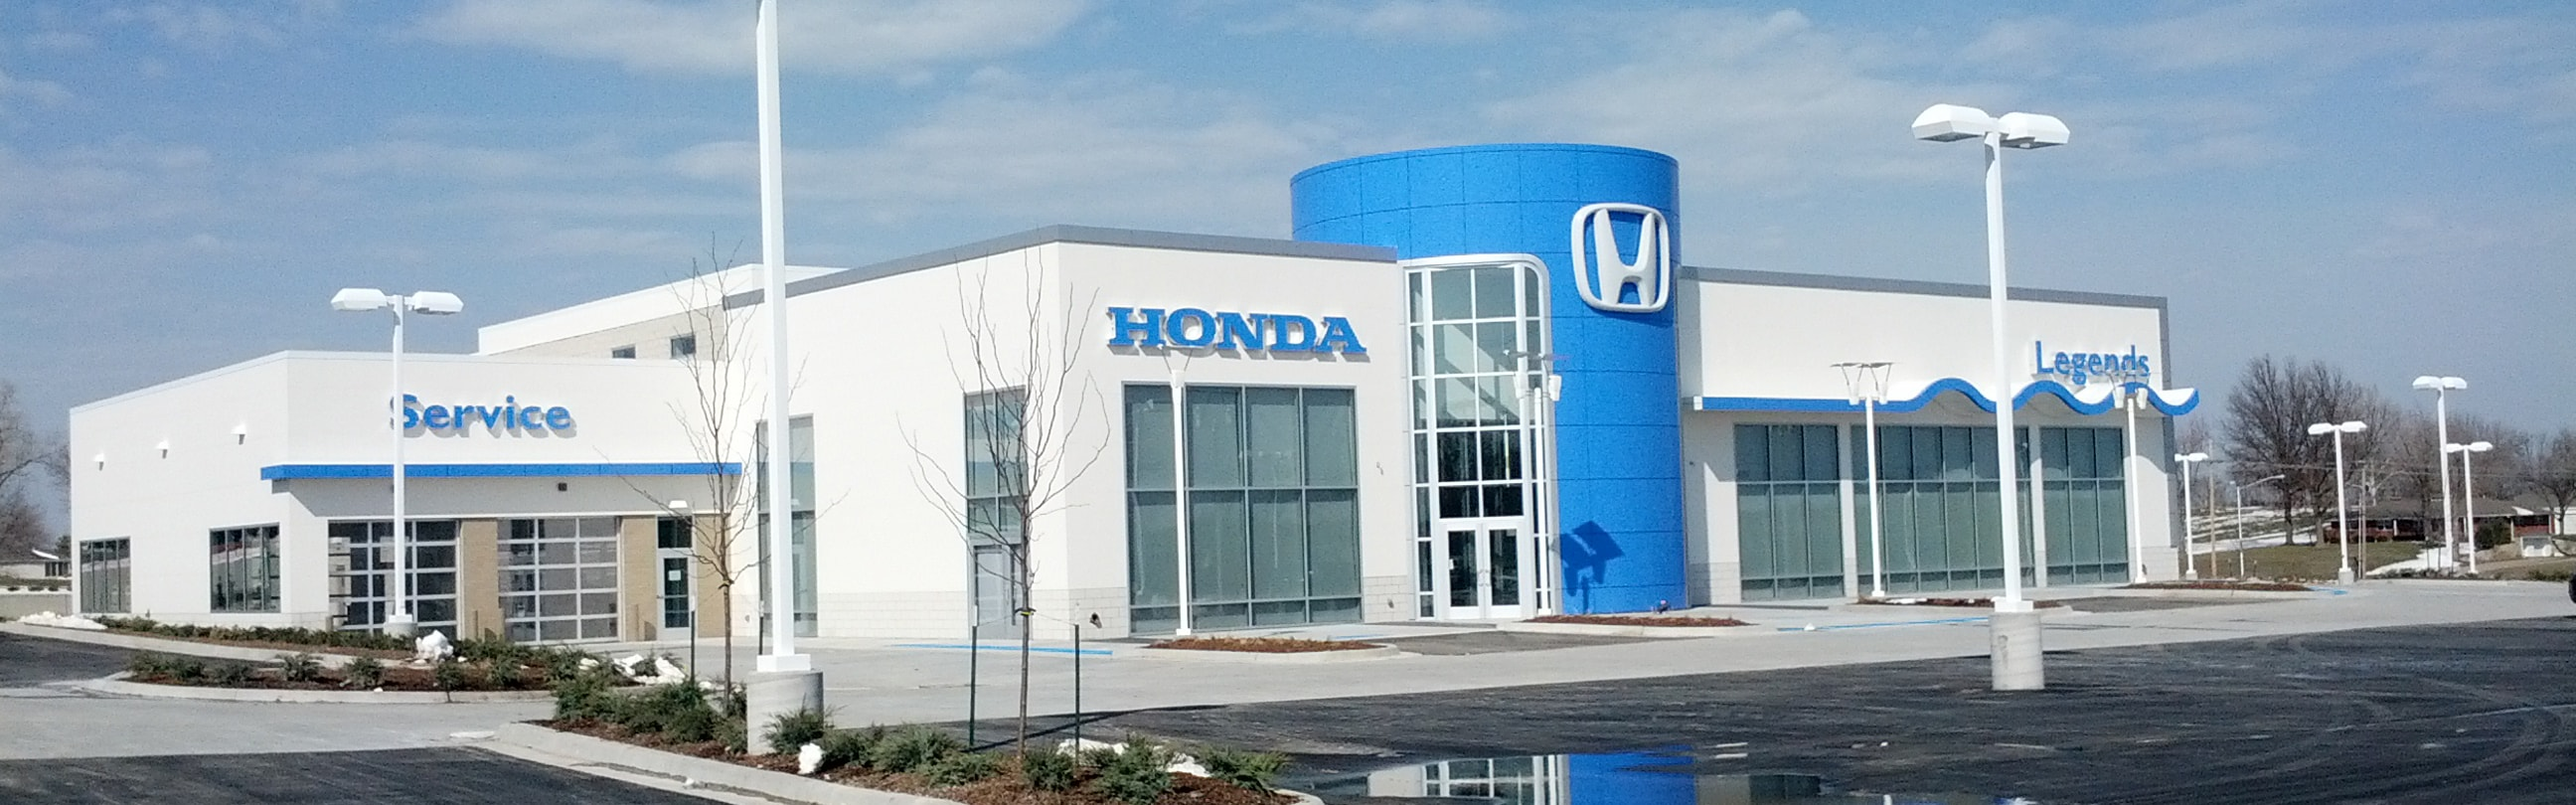 About legends honda honda dealership kansas city ks for Kansas city honda dealers